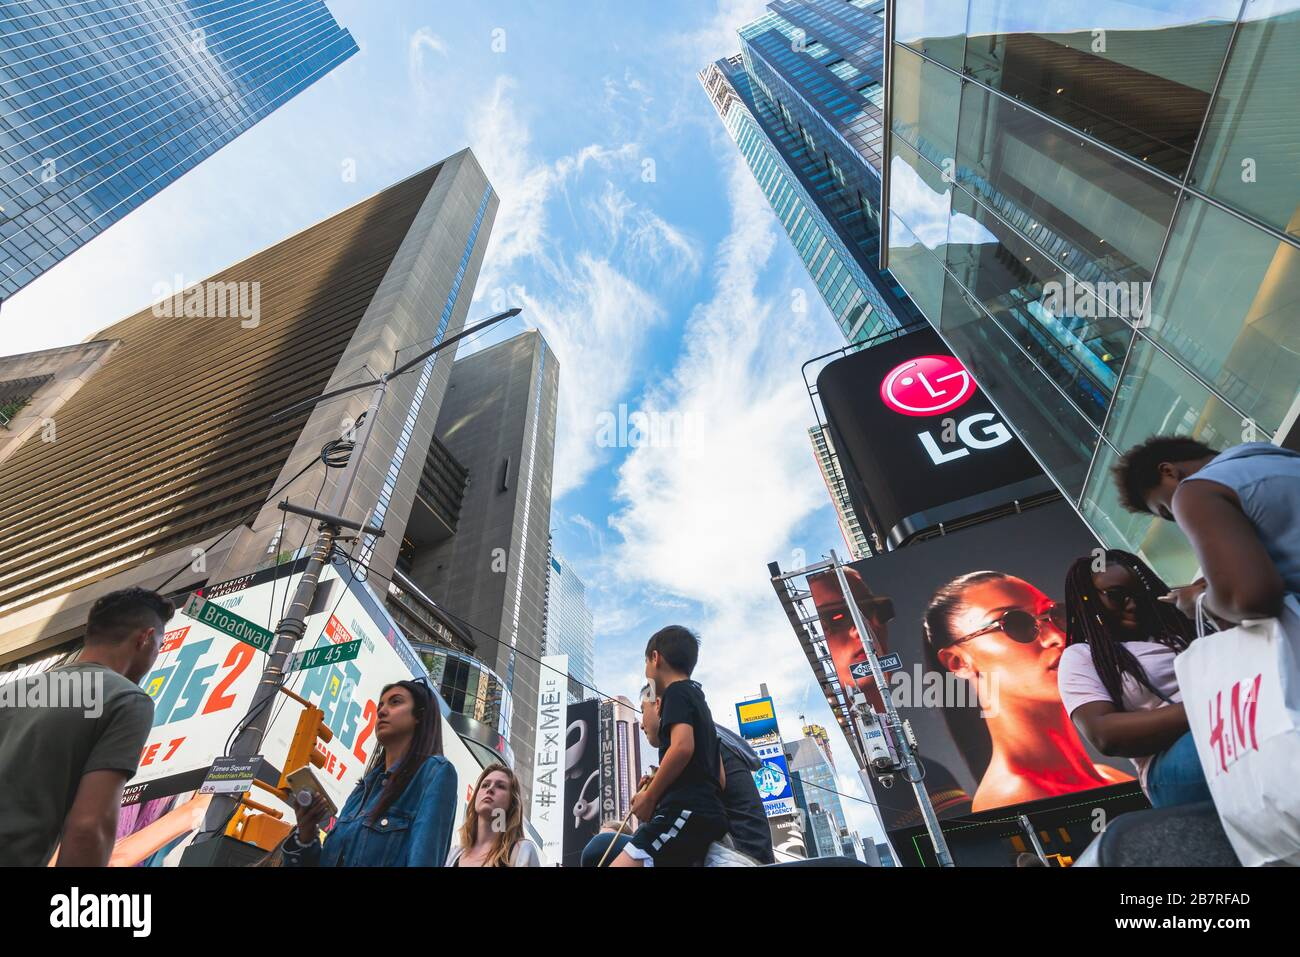 new York City/USA - May 24, 2019  Crowded Times Square, one of the world's most visited tourist attractions. Street view, architecture, bright billboa Stock Photo